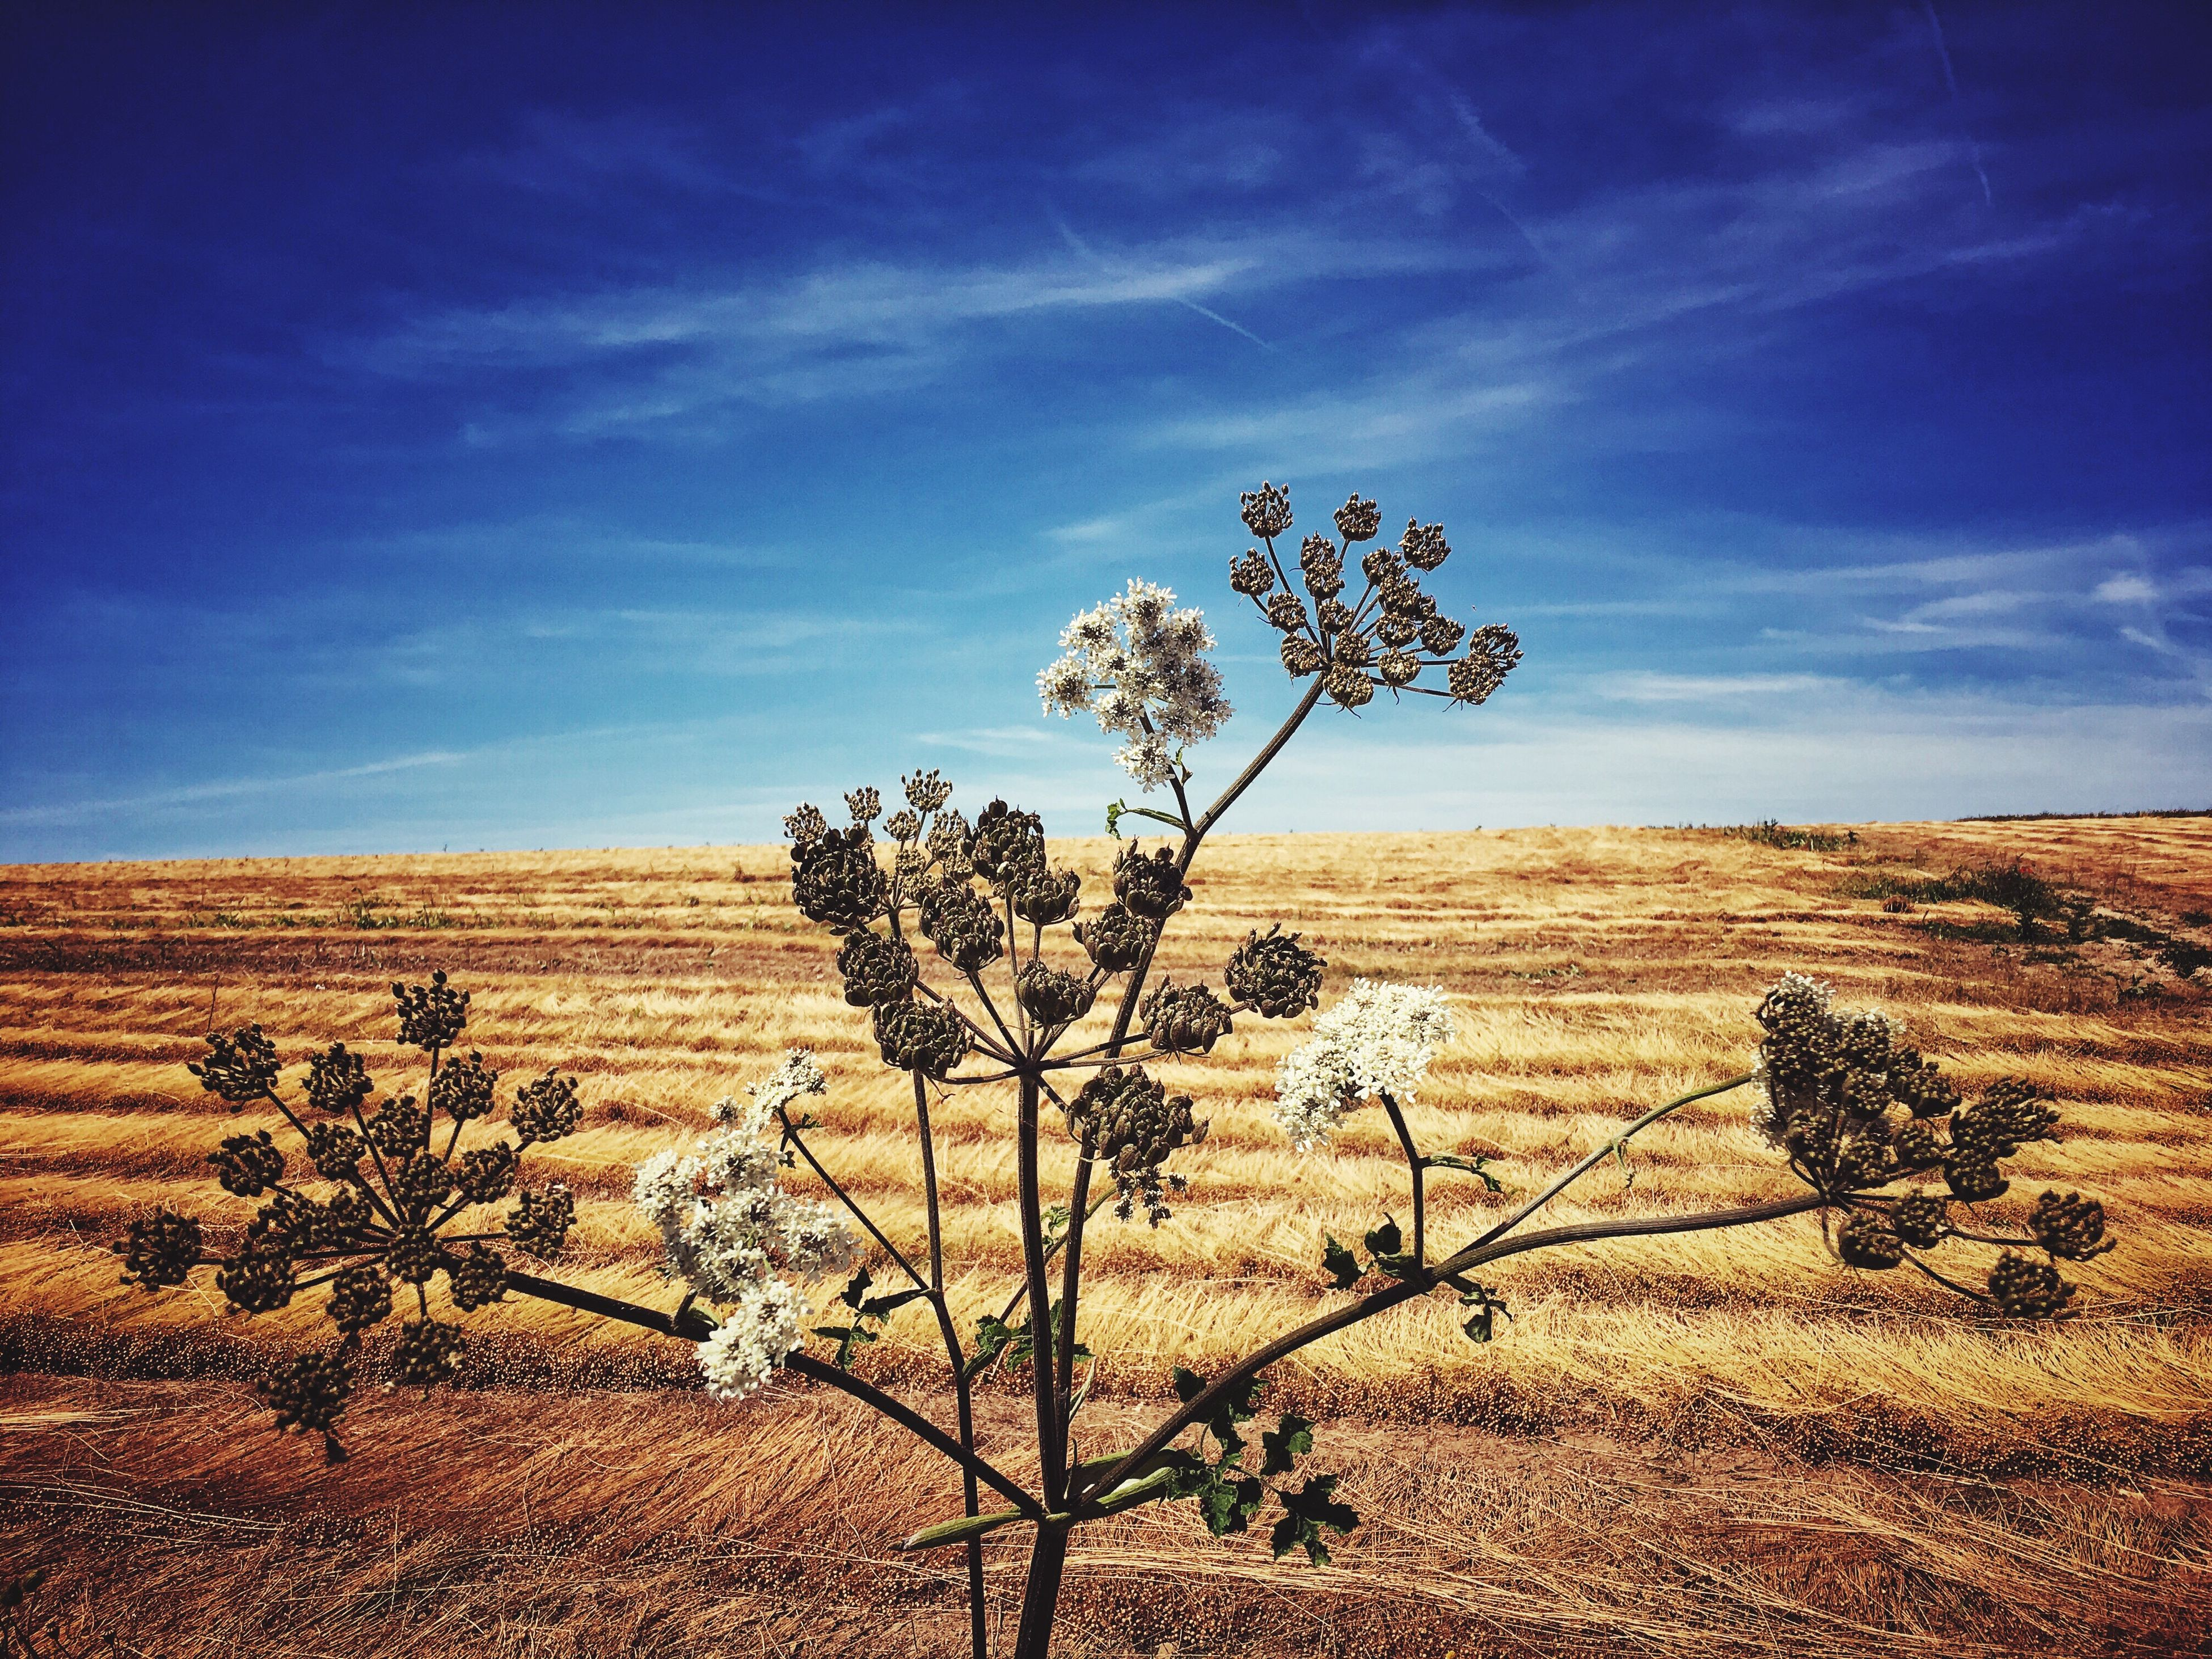 landscape, tranquility, tranquil scene, sky, nature, desert, scenics, arid climate, beauty in nature, tree, horizon over land, barren, cloud, bare tree, field, remote, non-urban scene, blue, plant, growth, solitude, dead plant, day, no people, outdoors, cloud - sky, non urban scene, brown, idyllic, rural scene, travel destinations